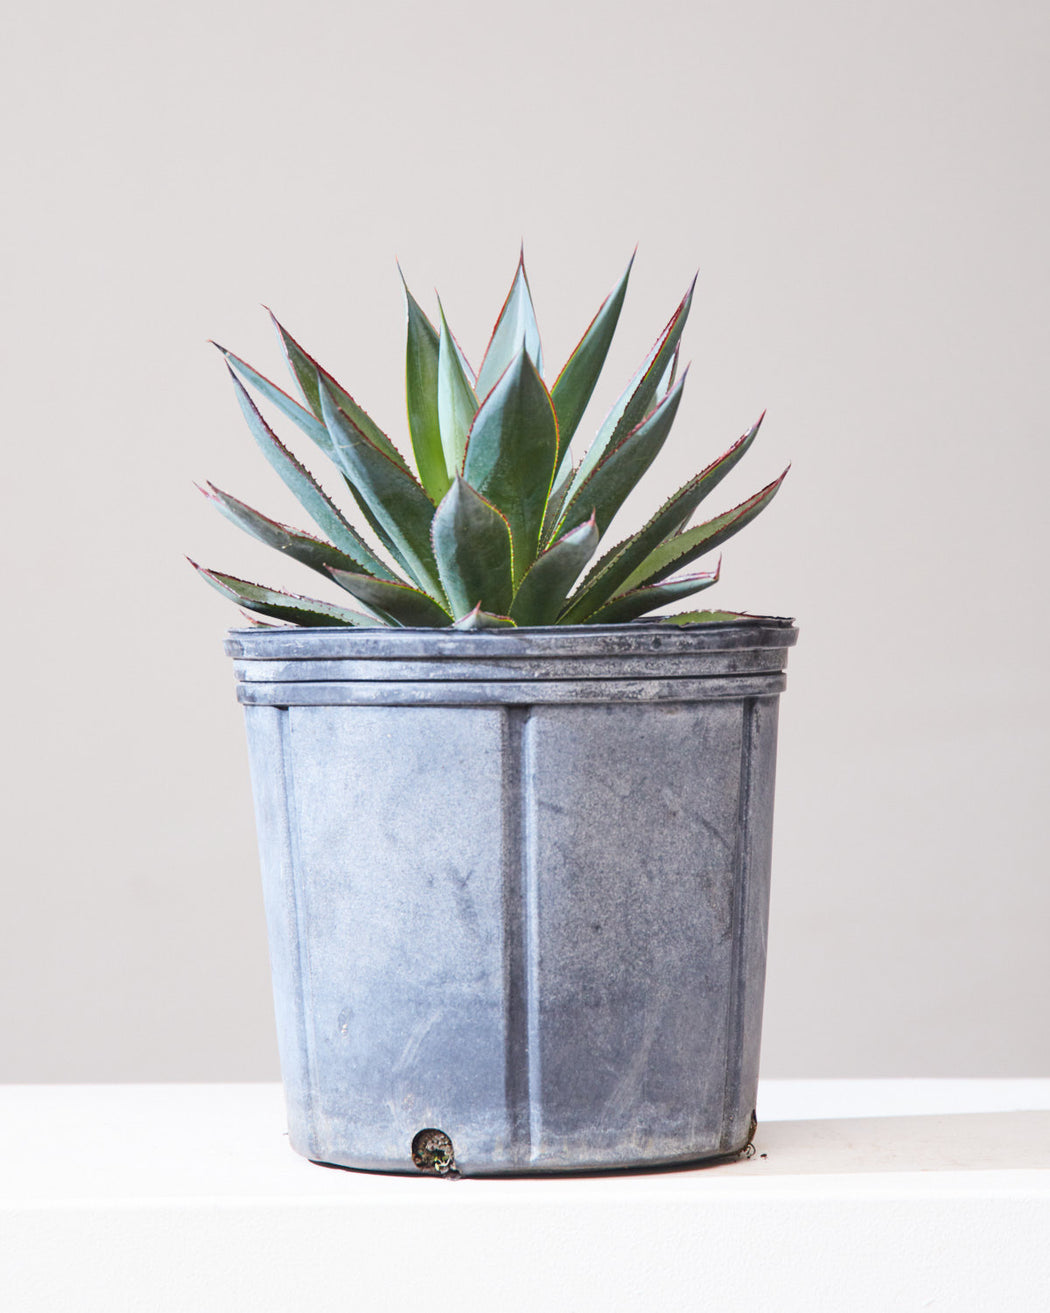 "AGAVE 'BLUE GLOW' 10"" Grower Pot"